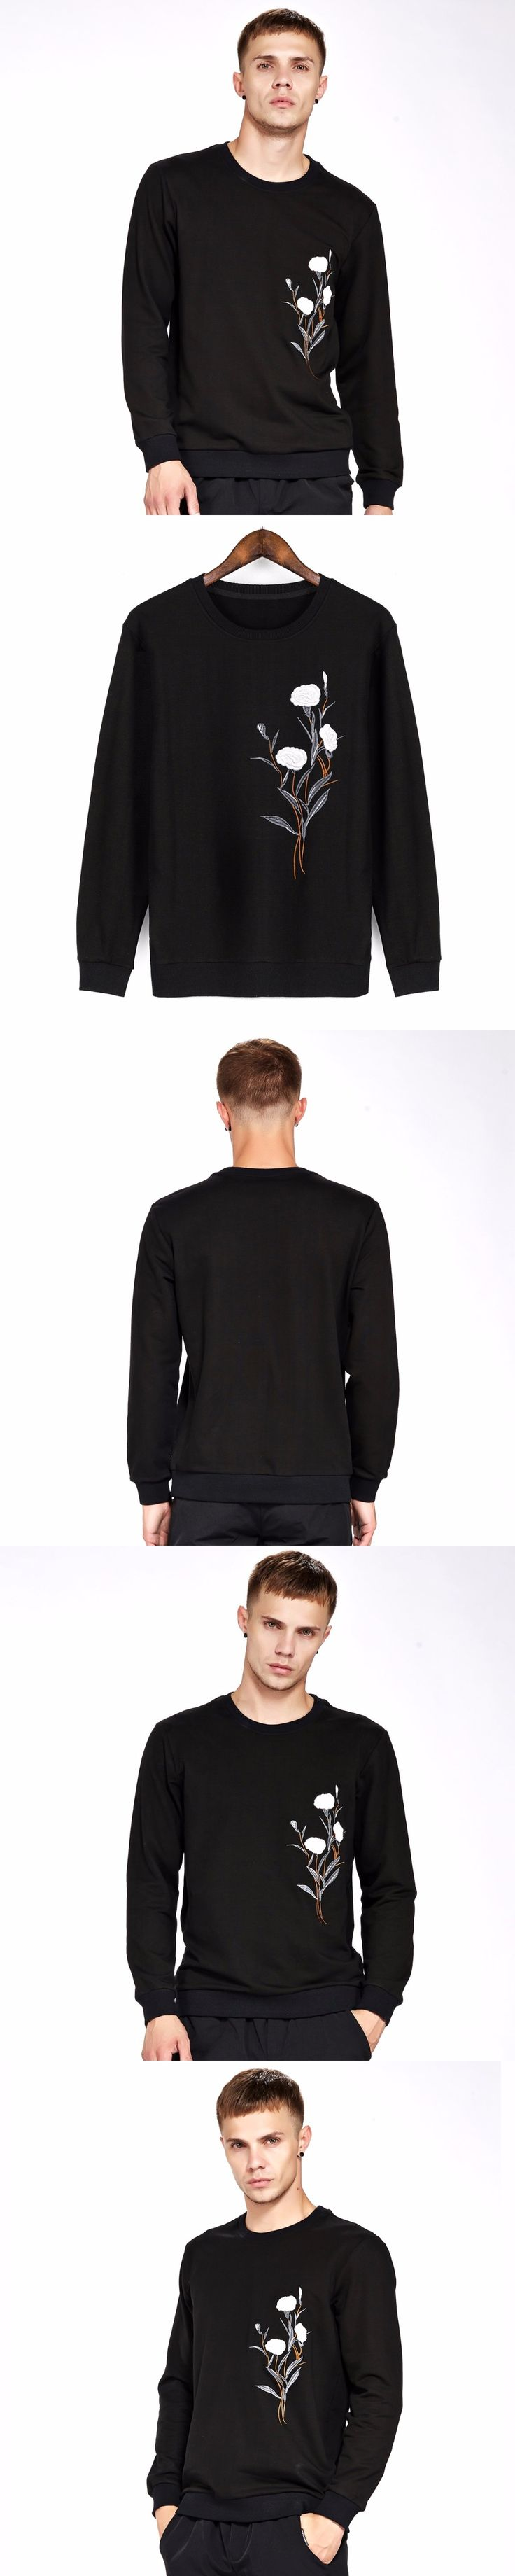 SHIFOPUTI Antumn Latest Design Male Luxury Long Sleeve Slim T-shirt Comfortable Popular Brand Clothing High Quality T shirts